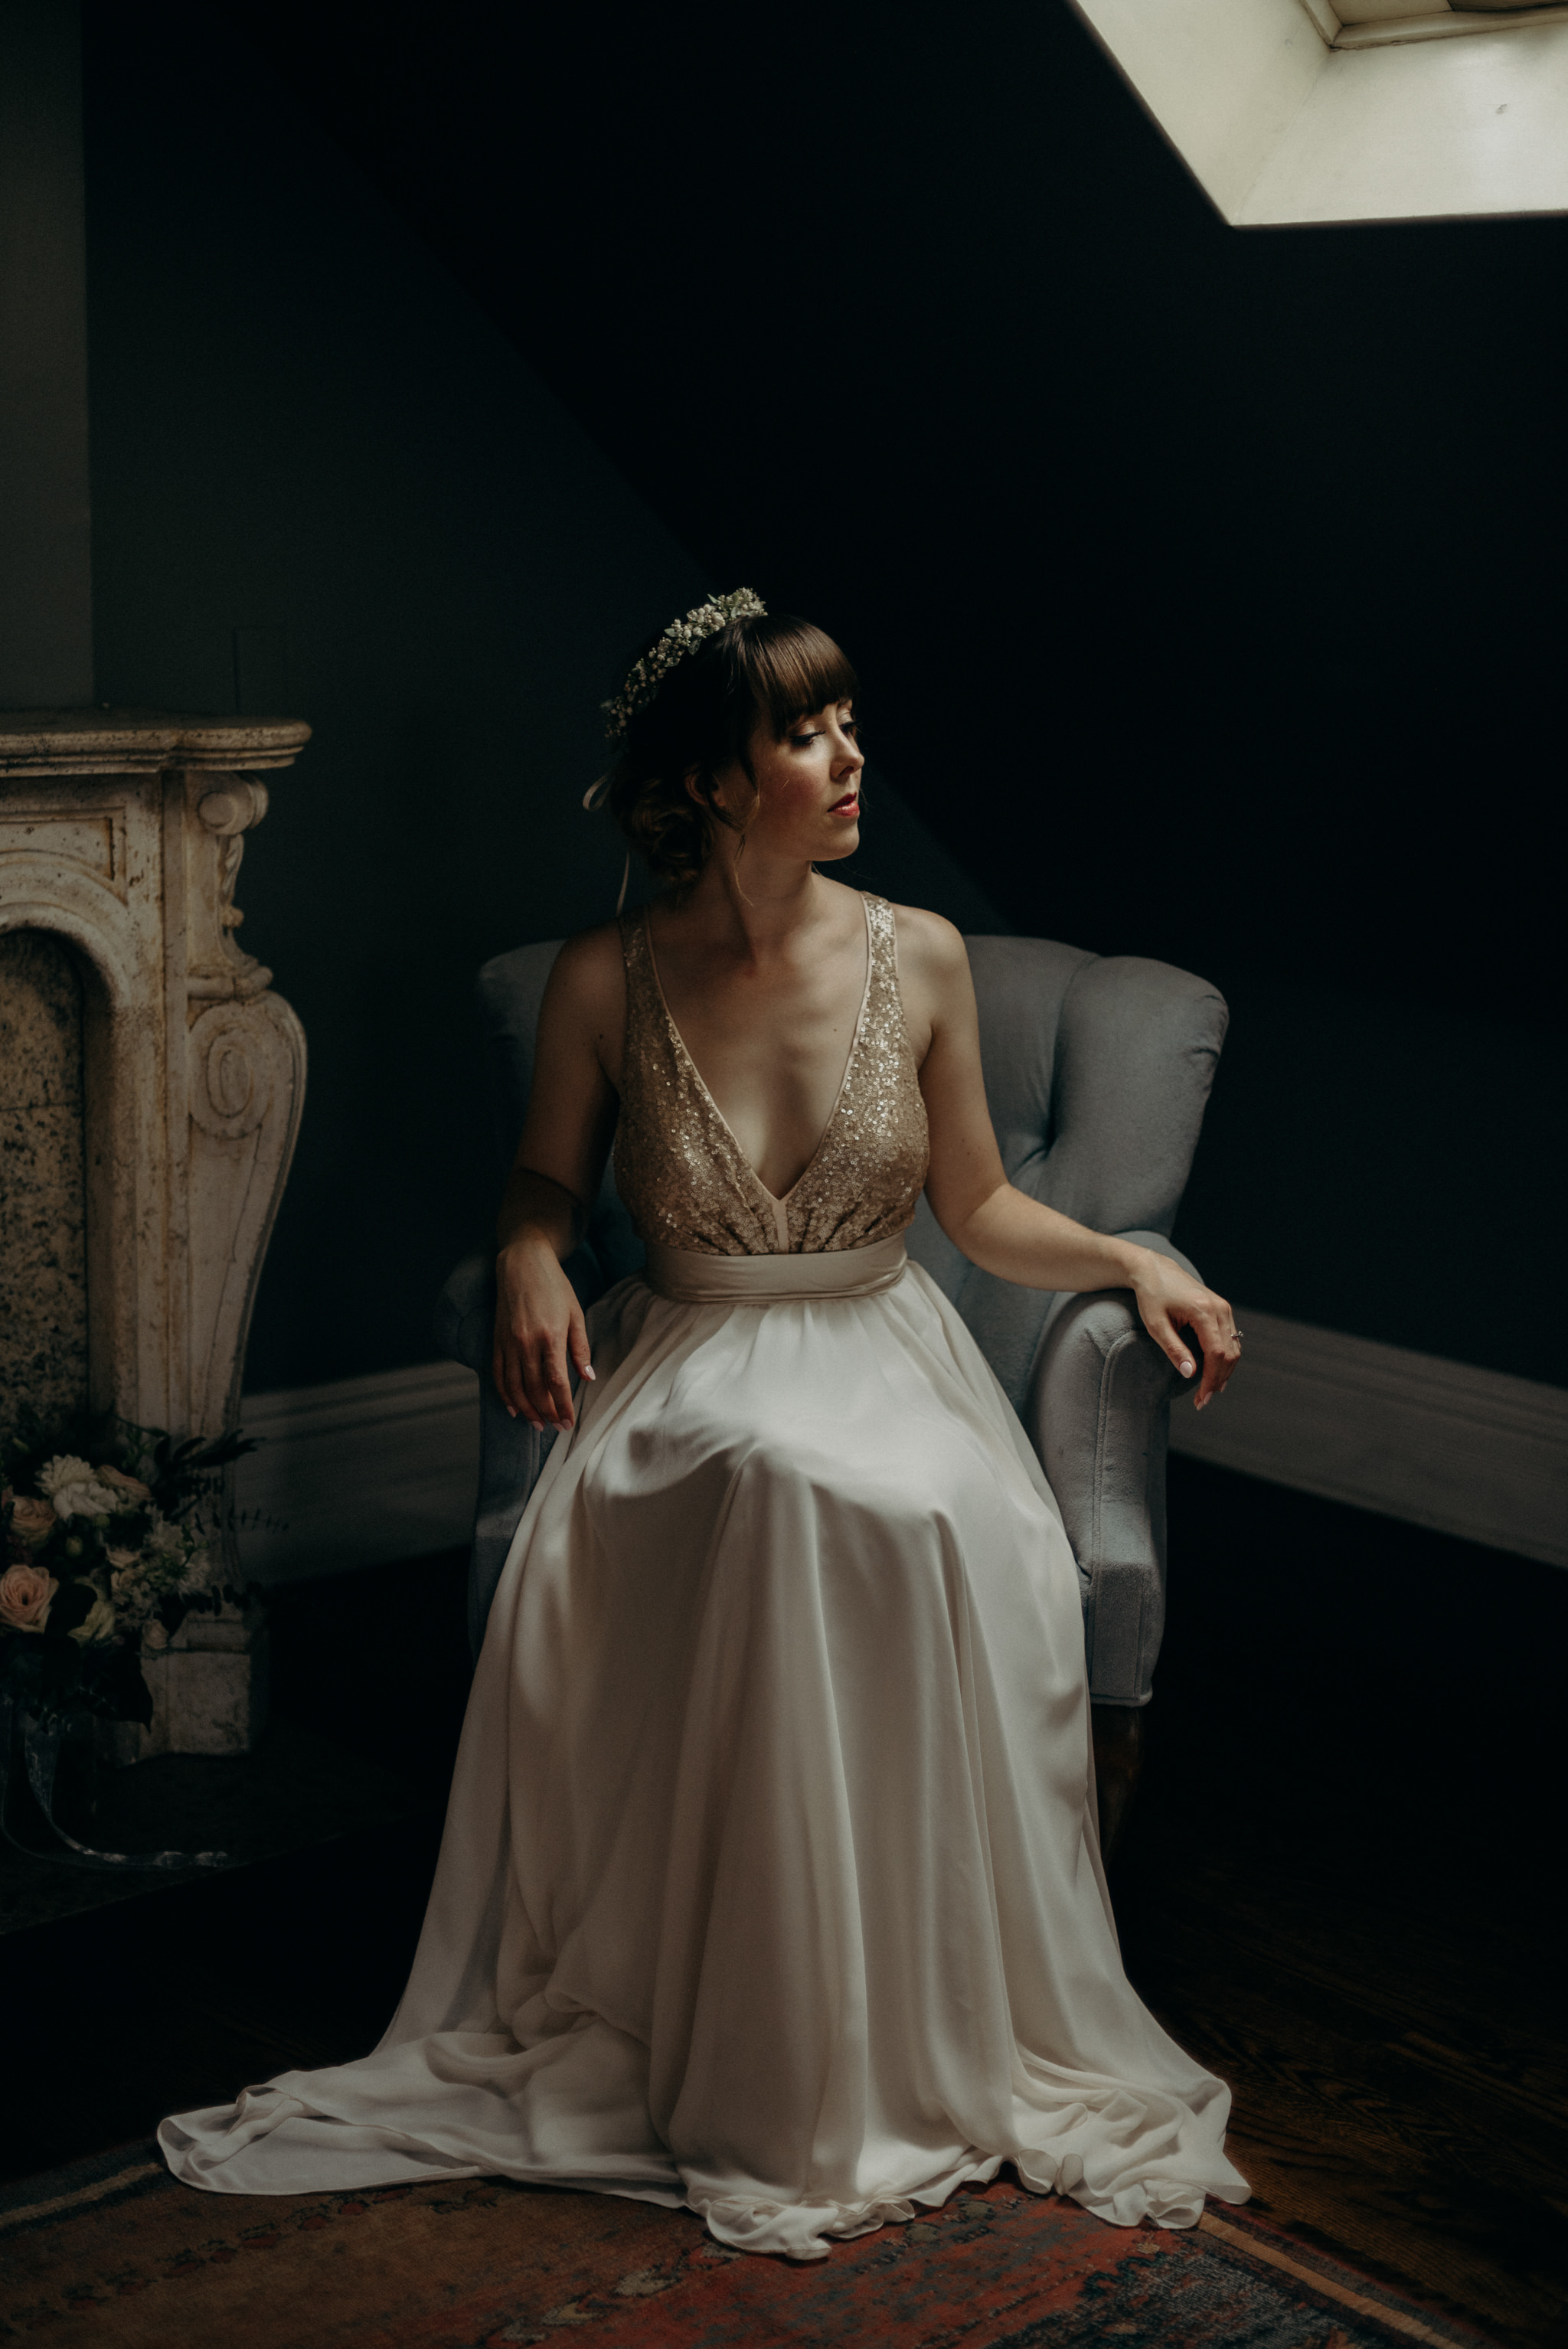 bride sitting in elegant chair in dark room with skylight